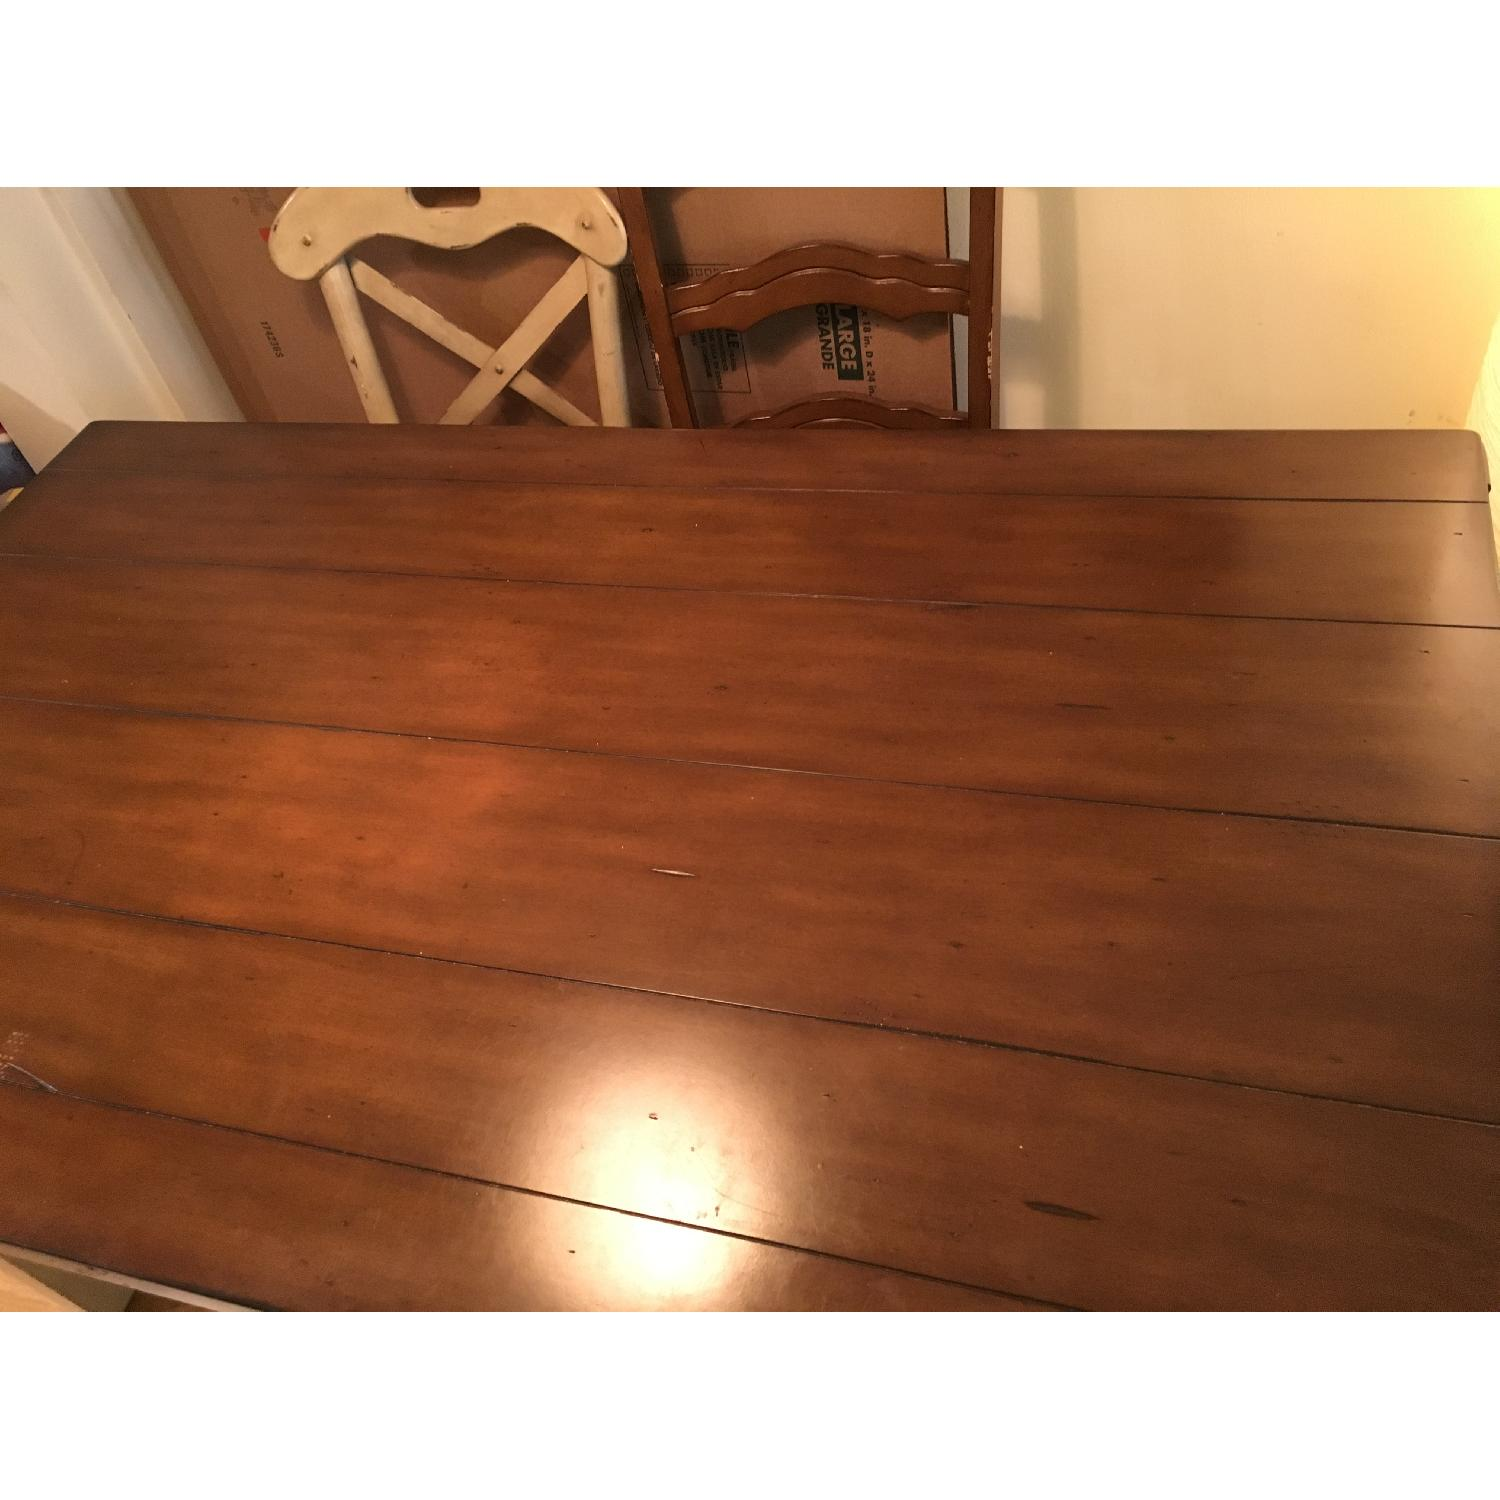 Pier 1 Dining Table in Antique Ivory - image-2